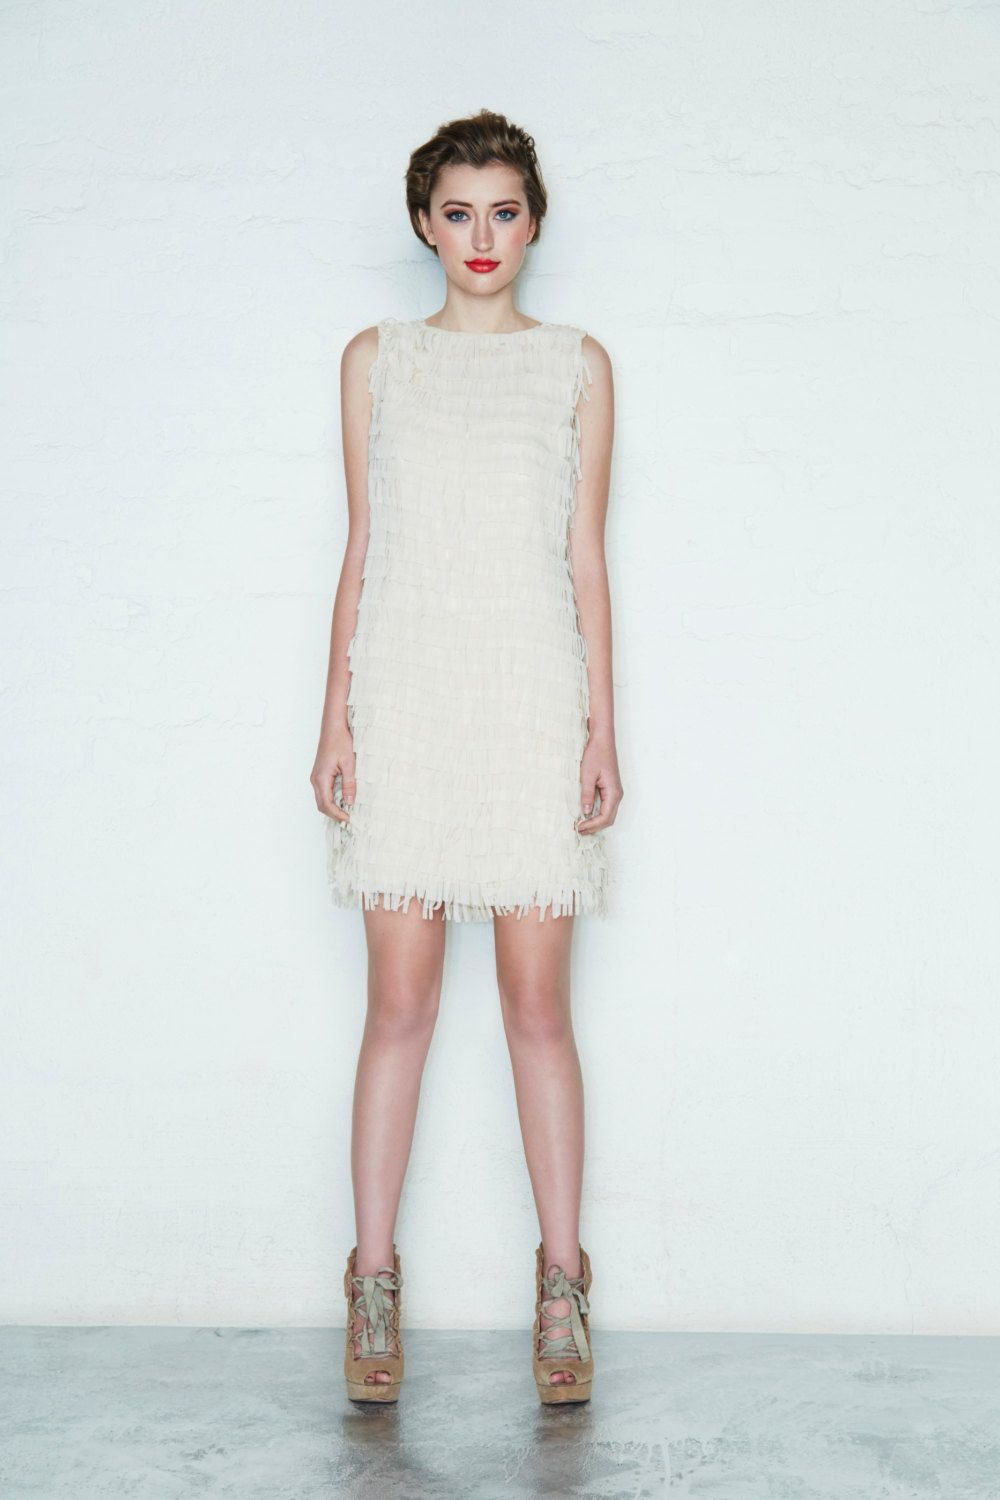 Mod White Fringe Dress, Sixties Simple Wedding Dress, Spring Dress ...